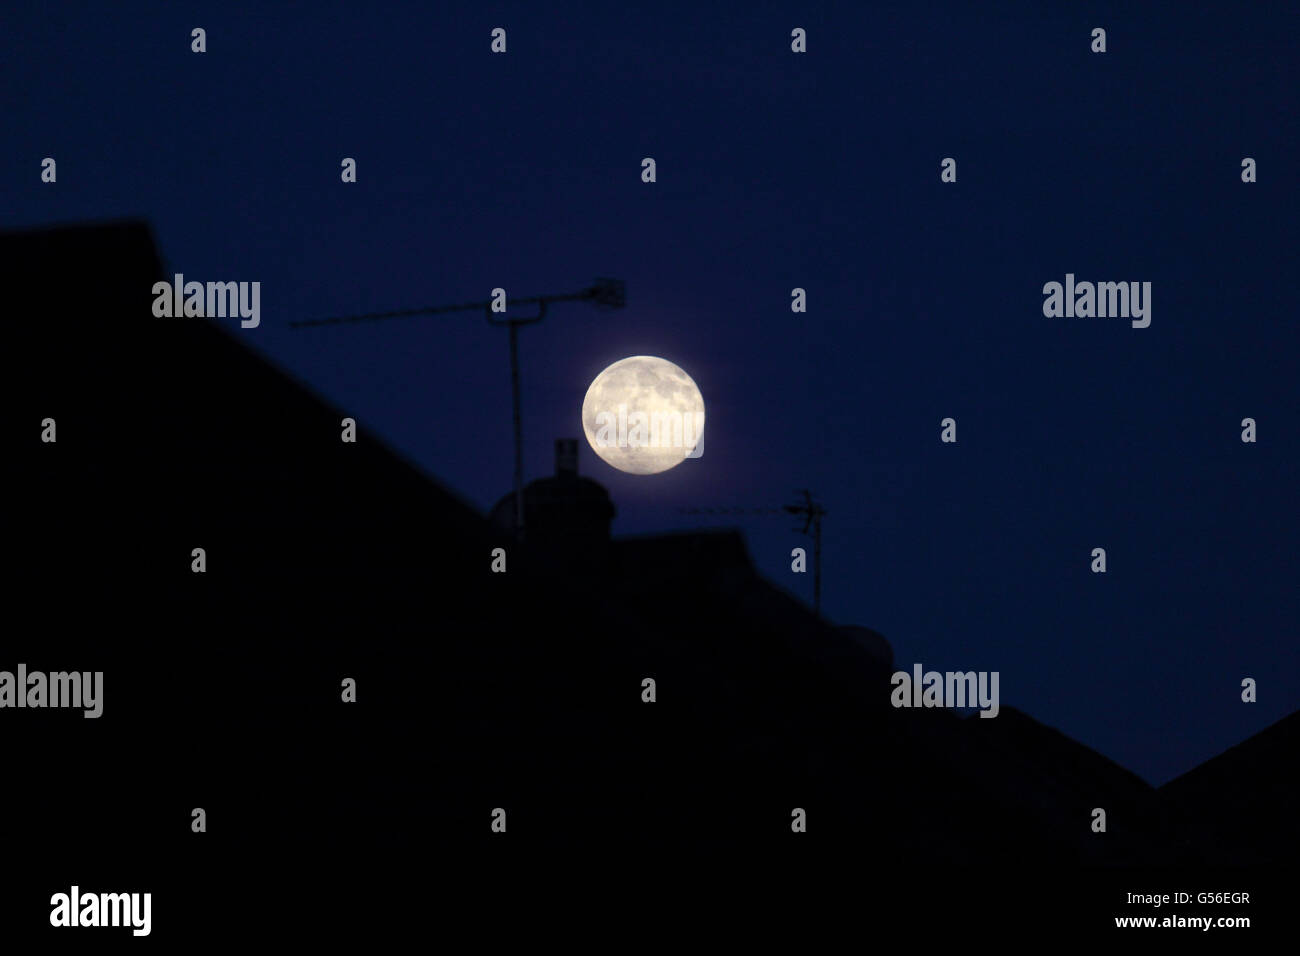 Epsom, Surrey, England, UK. 20th June 2016. The rising full or 'strawberry moon' on the evening of the summer - Stock Image